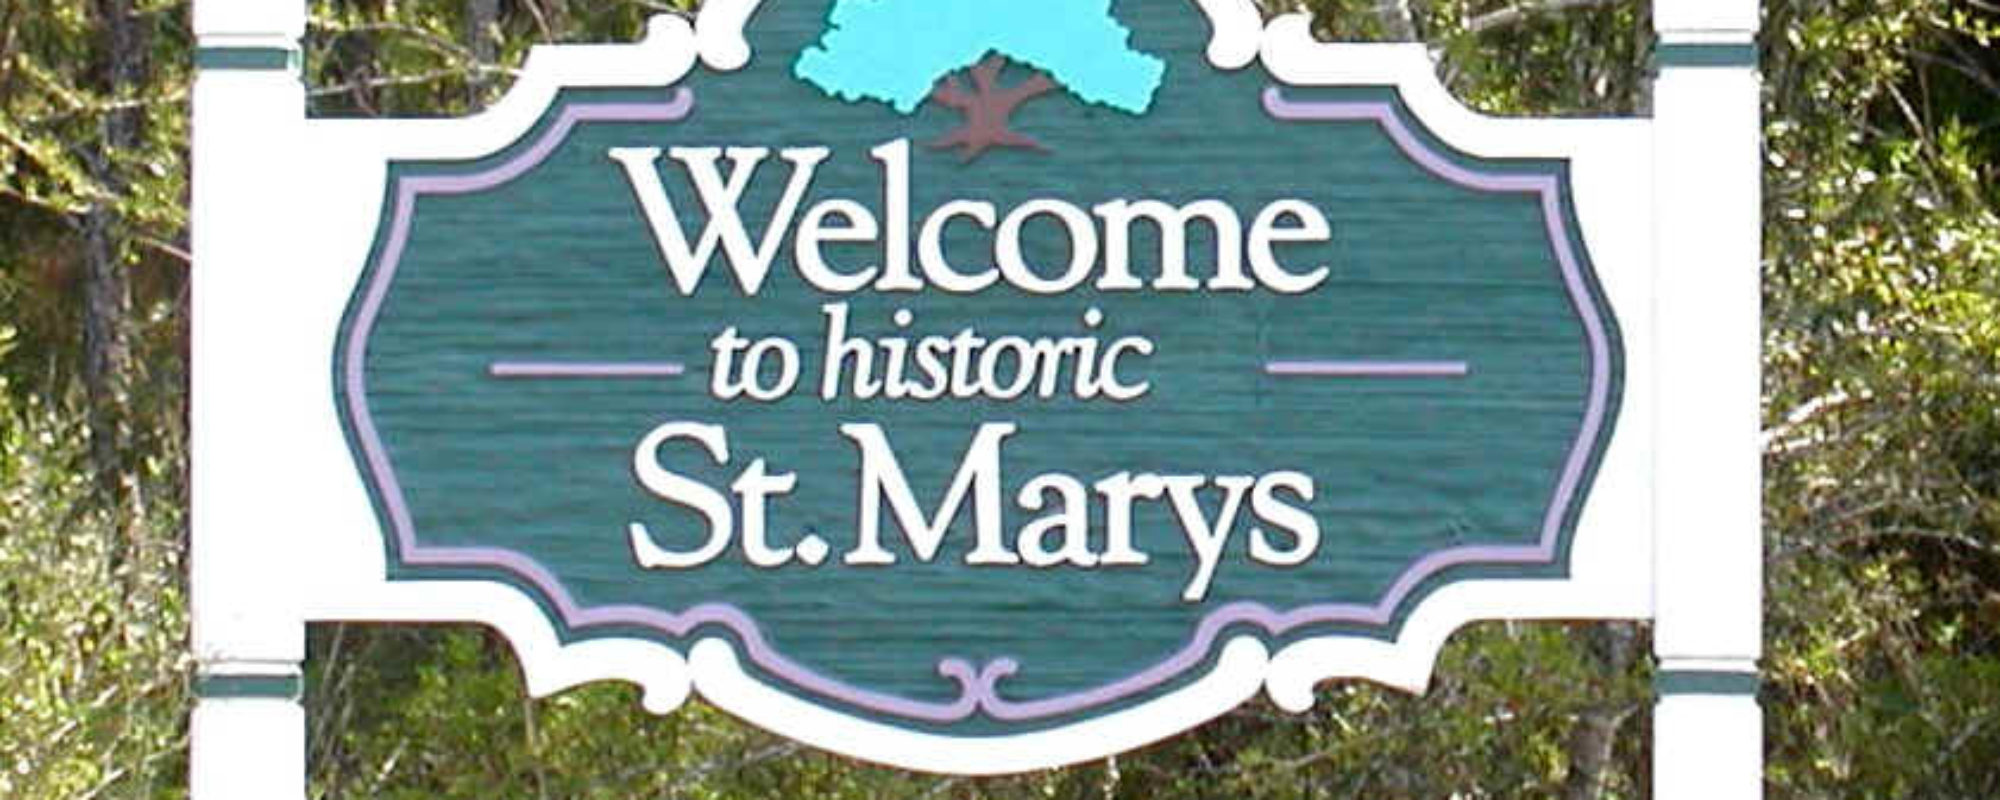 St Marys Welcome Sign